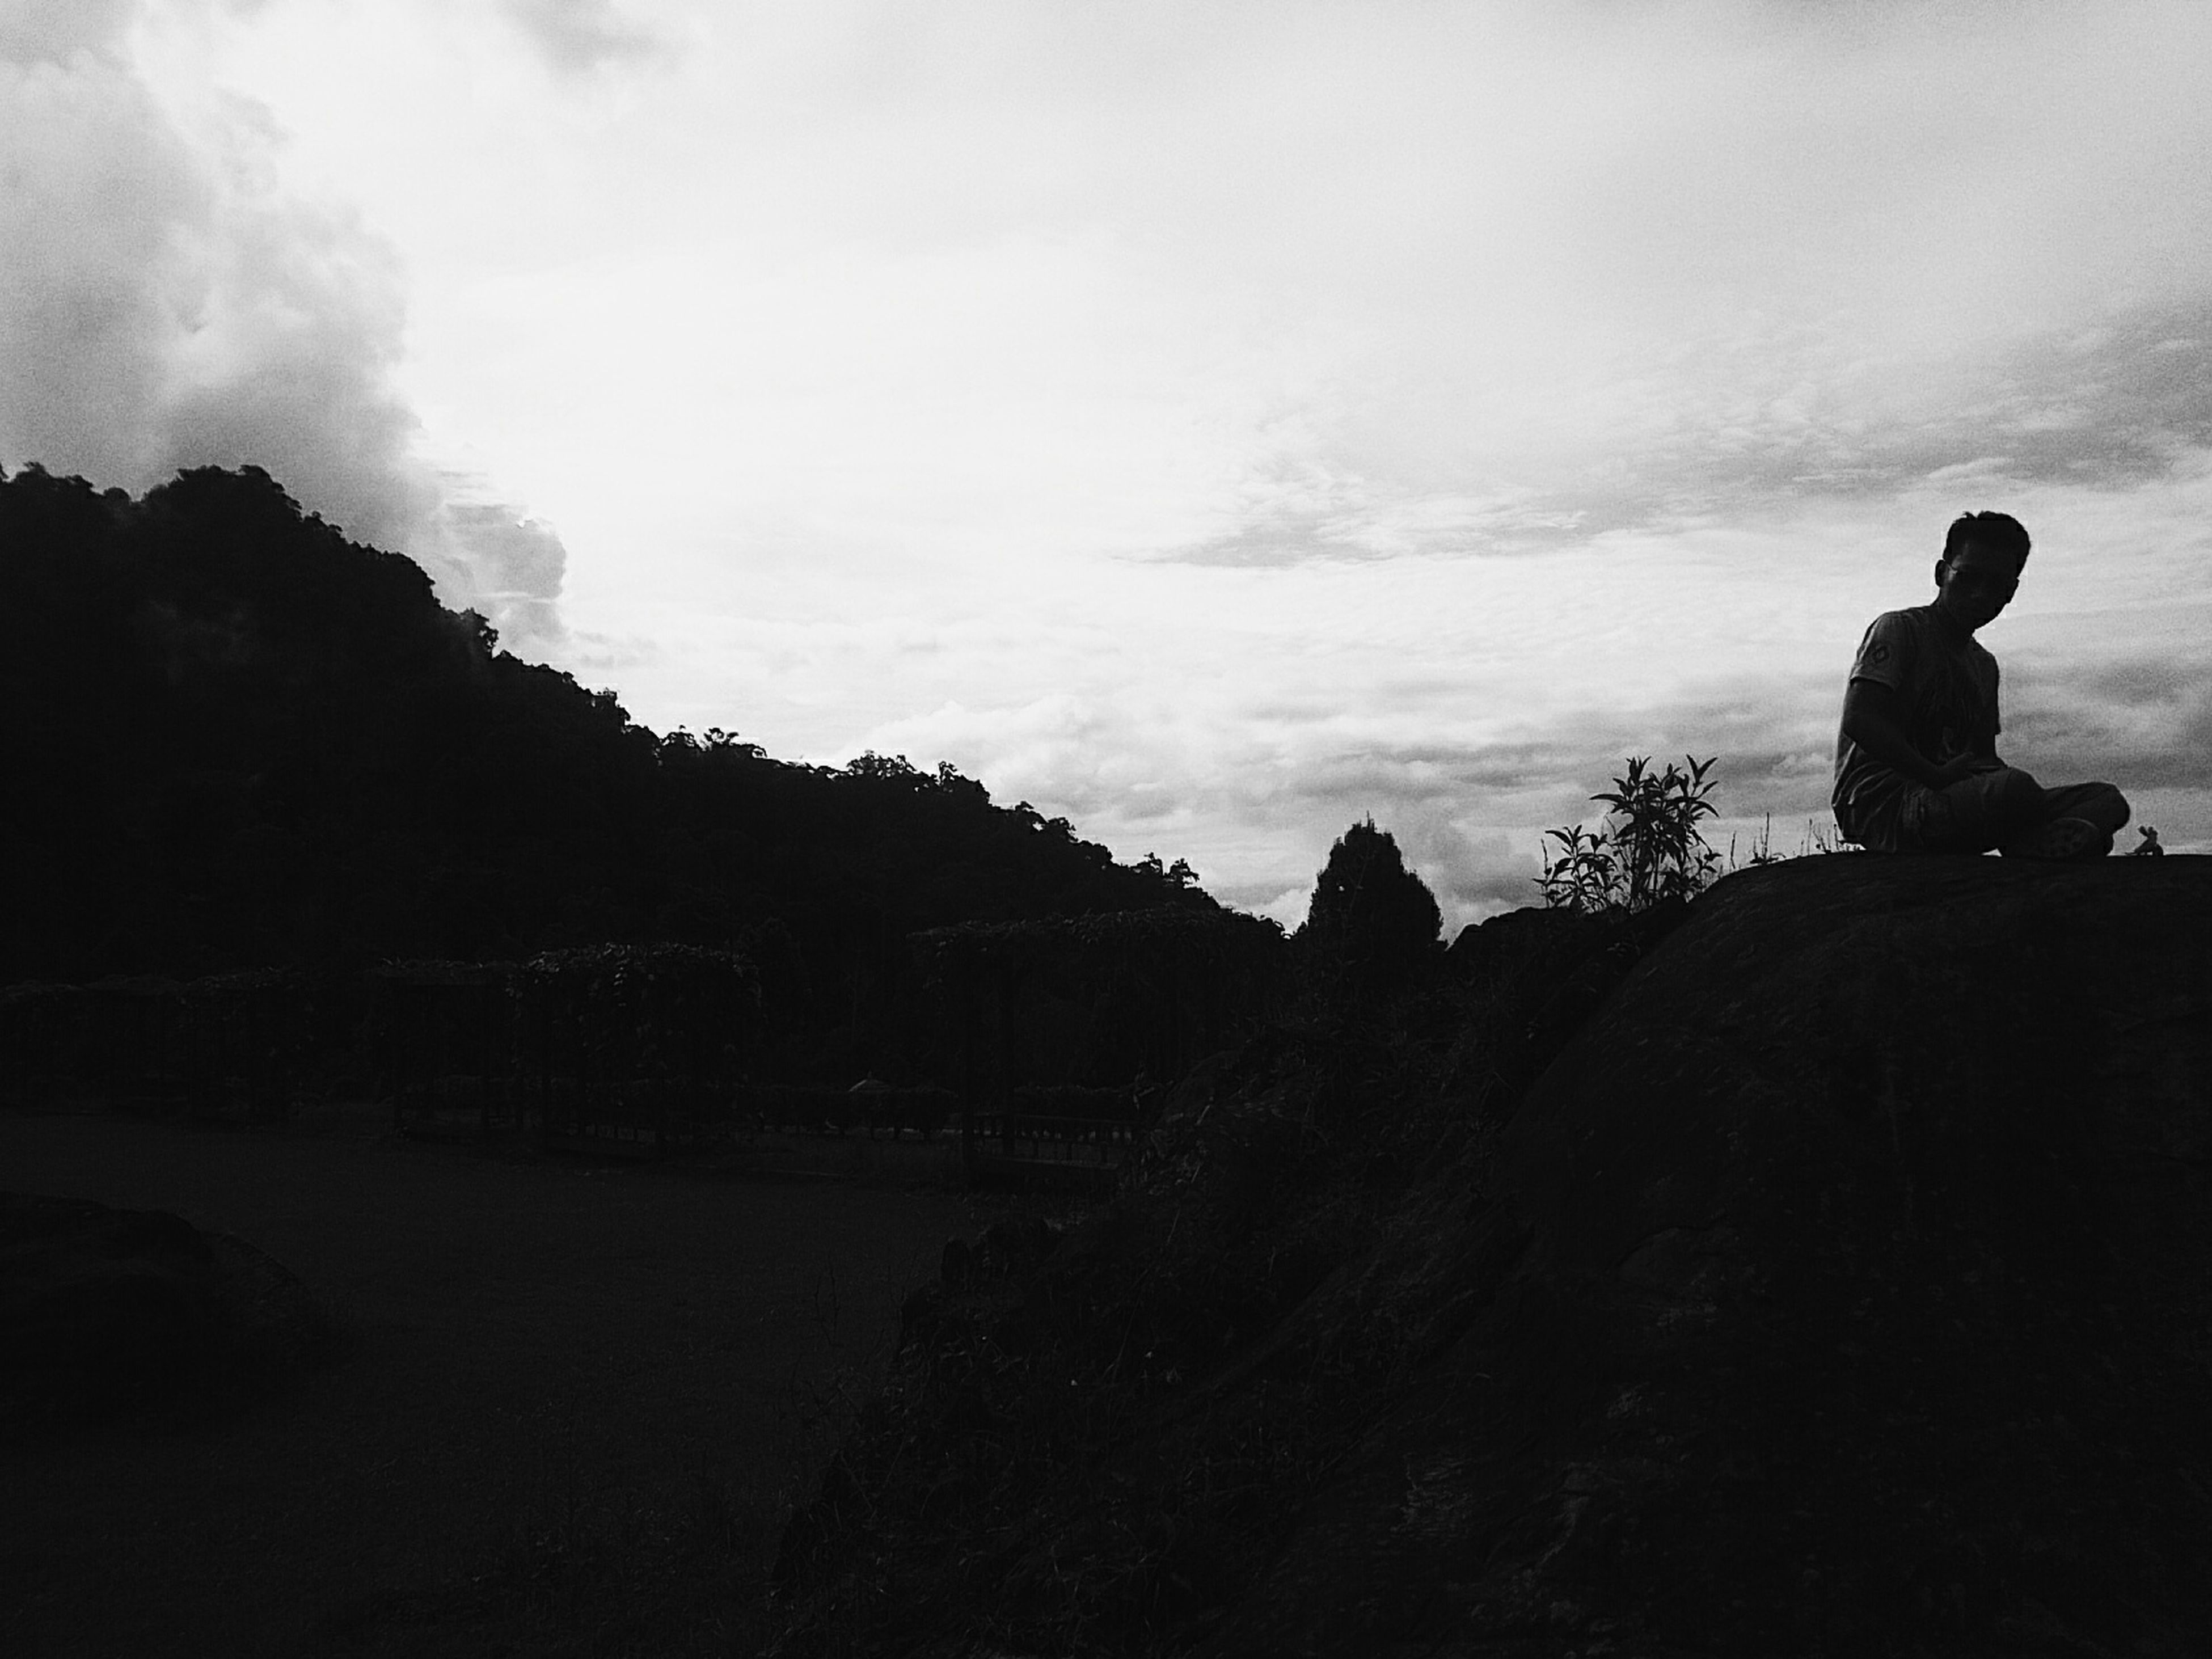 silhouette, sky, leisure activity, lifestyles, men, cloud - sky, tranquility, standing, tranquil scene, full length, rock - object, nature, scenics, rear view, beauty in nature, person, cloud